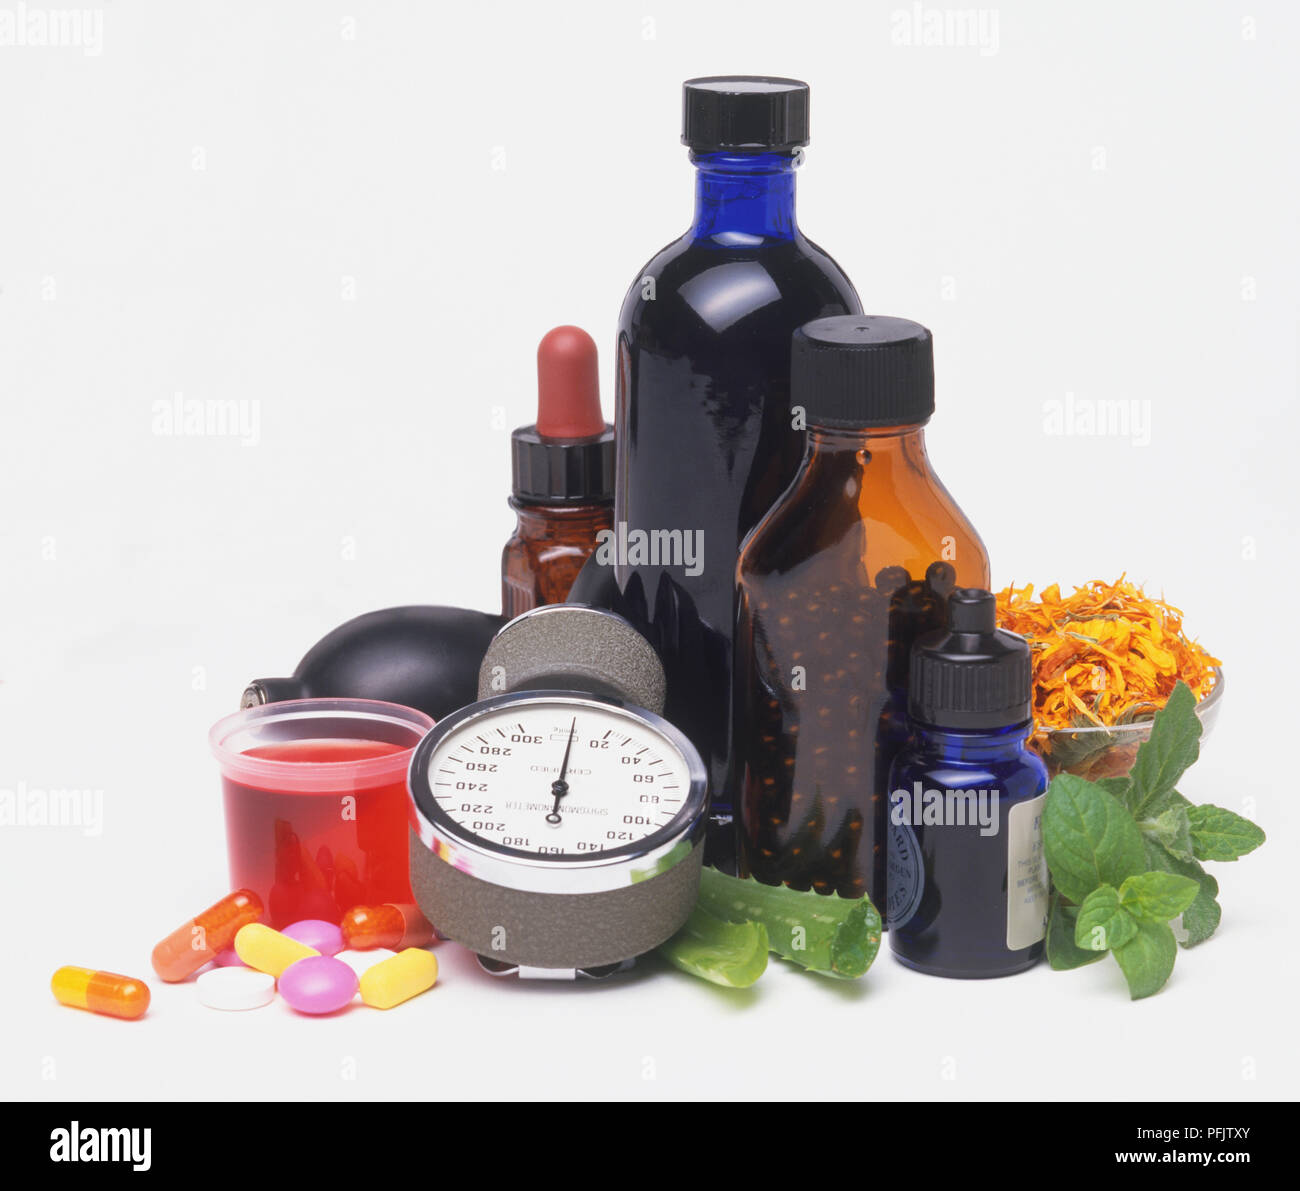 Alternative medicine, including bottles, capsules, Sphygmomanometer - Stock Image